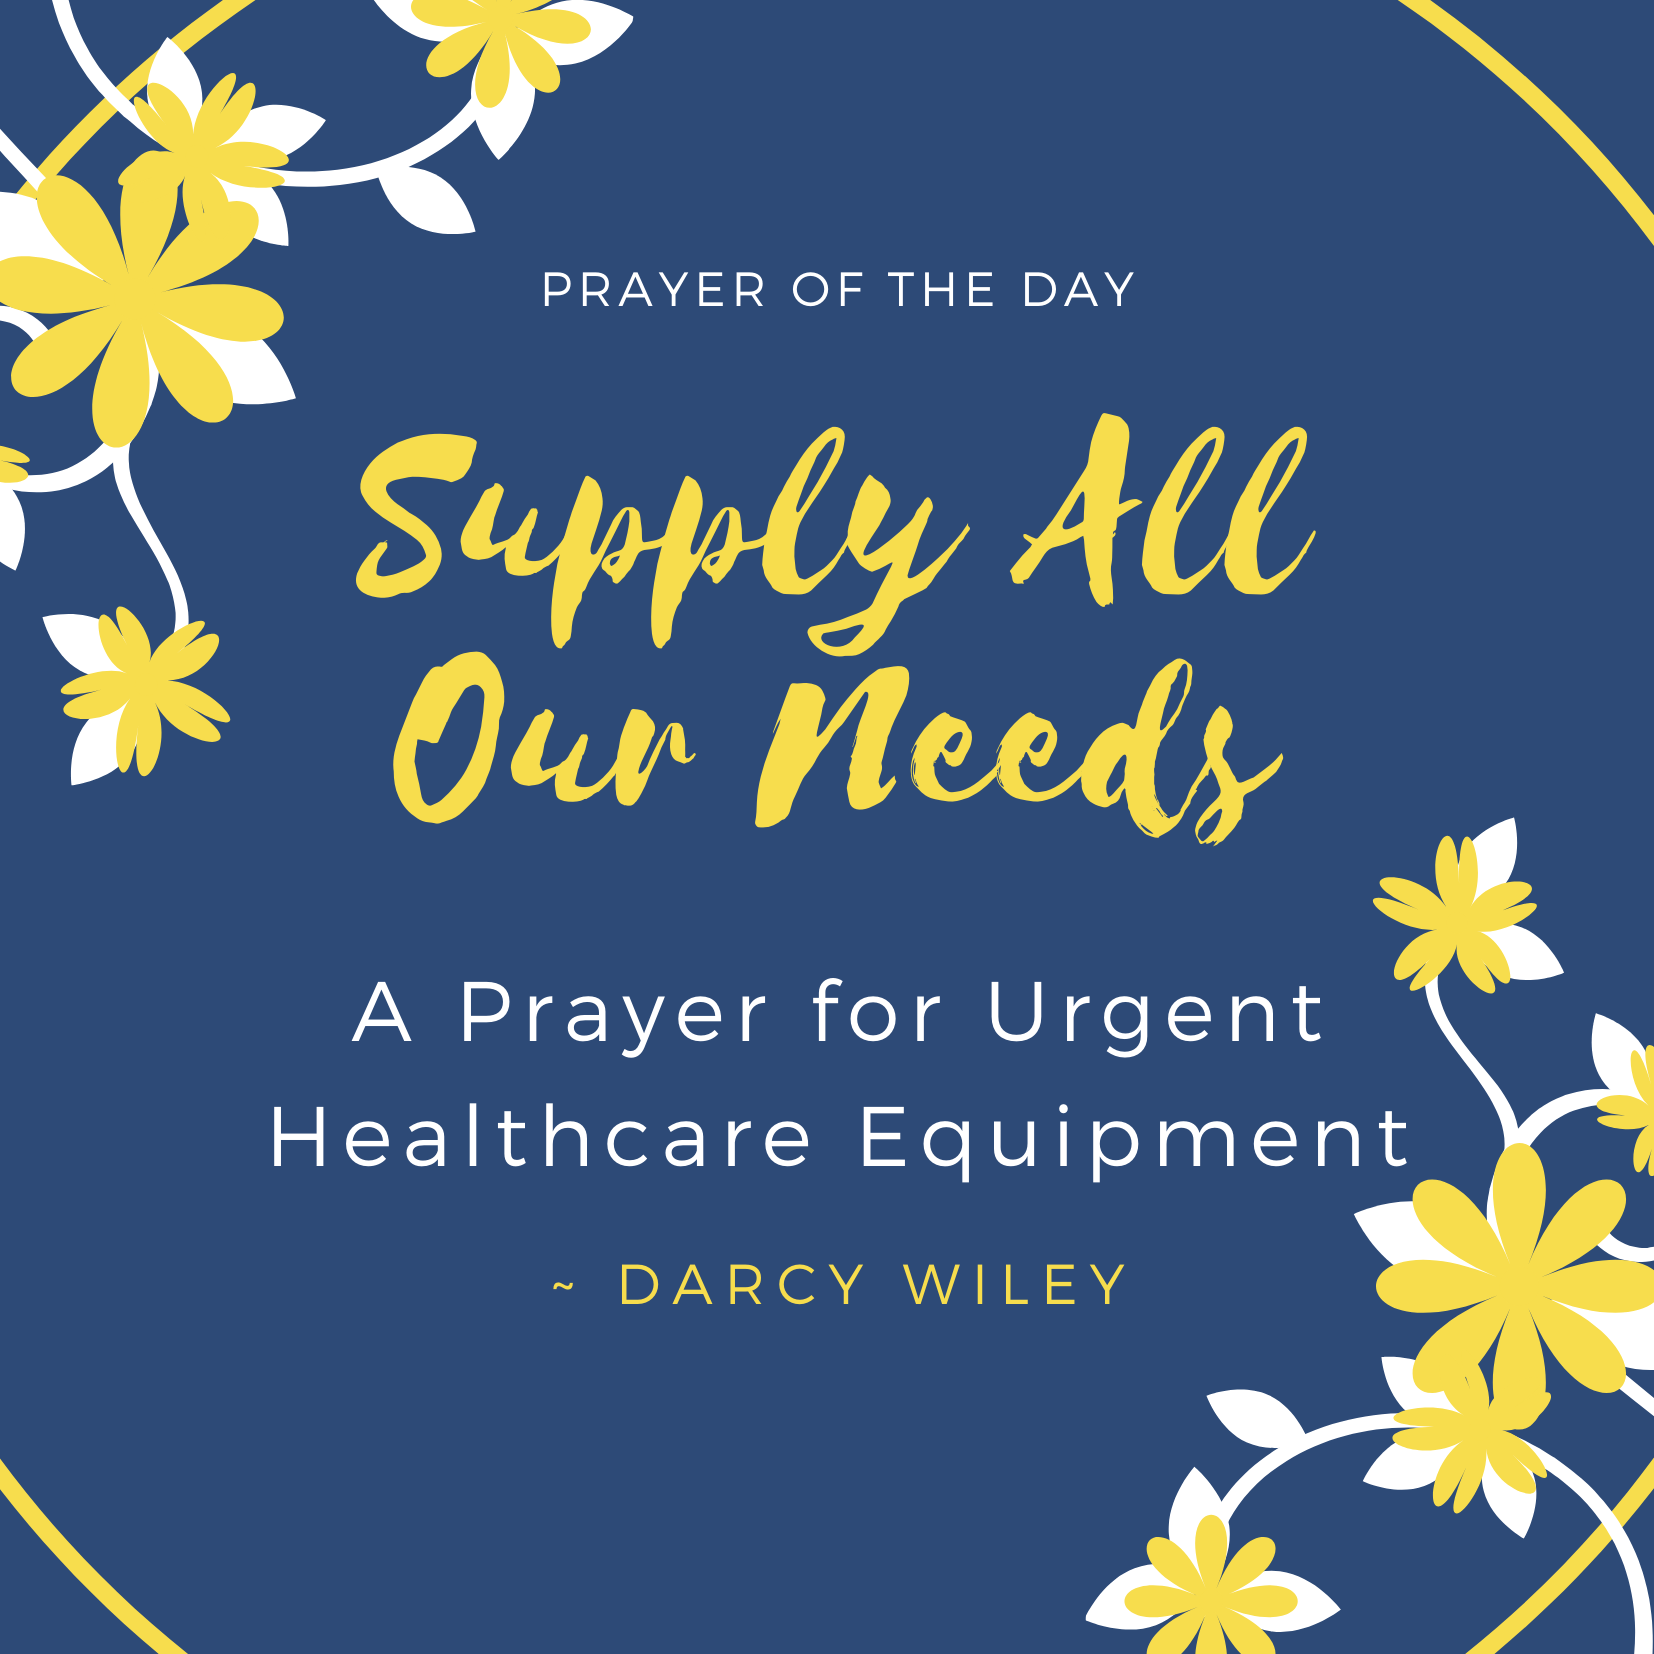 May 5 ~ Supply All Our Needs